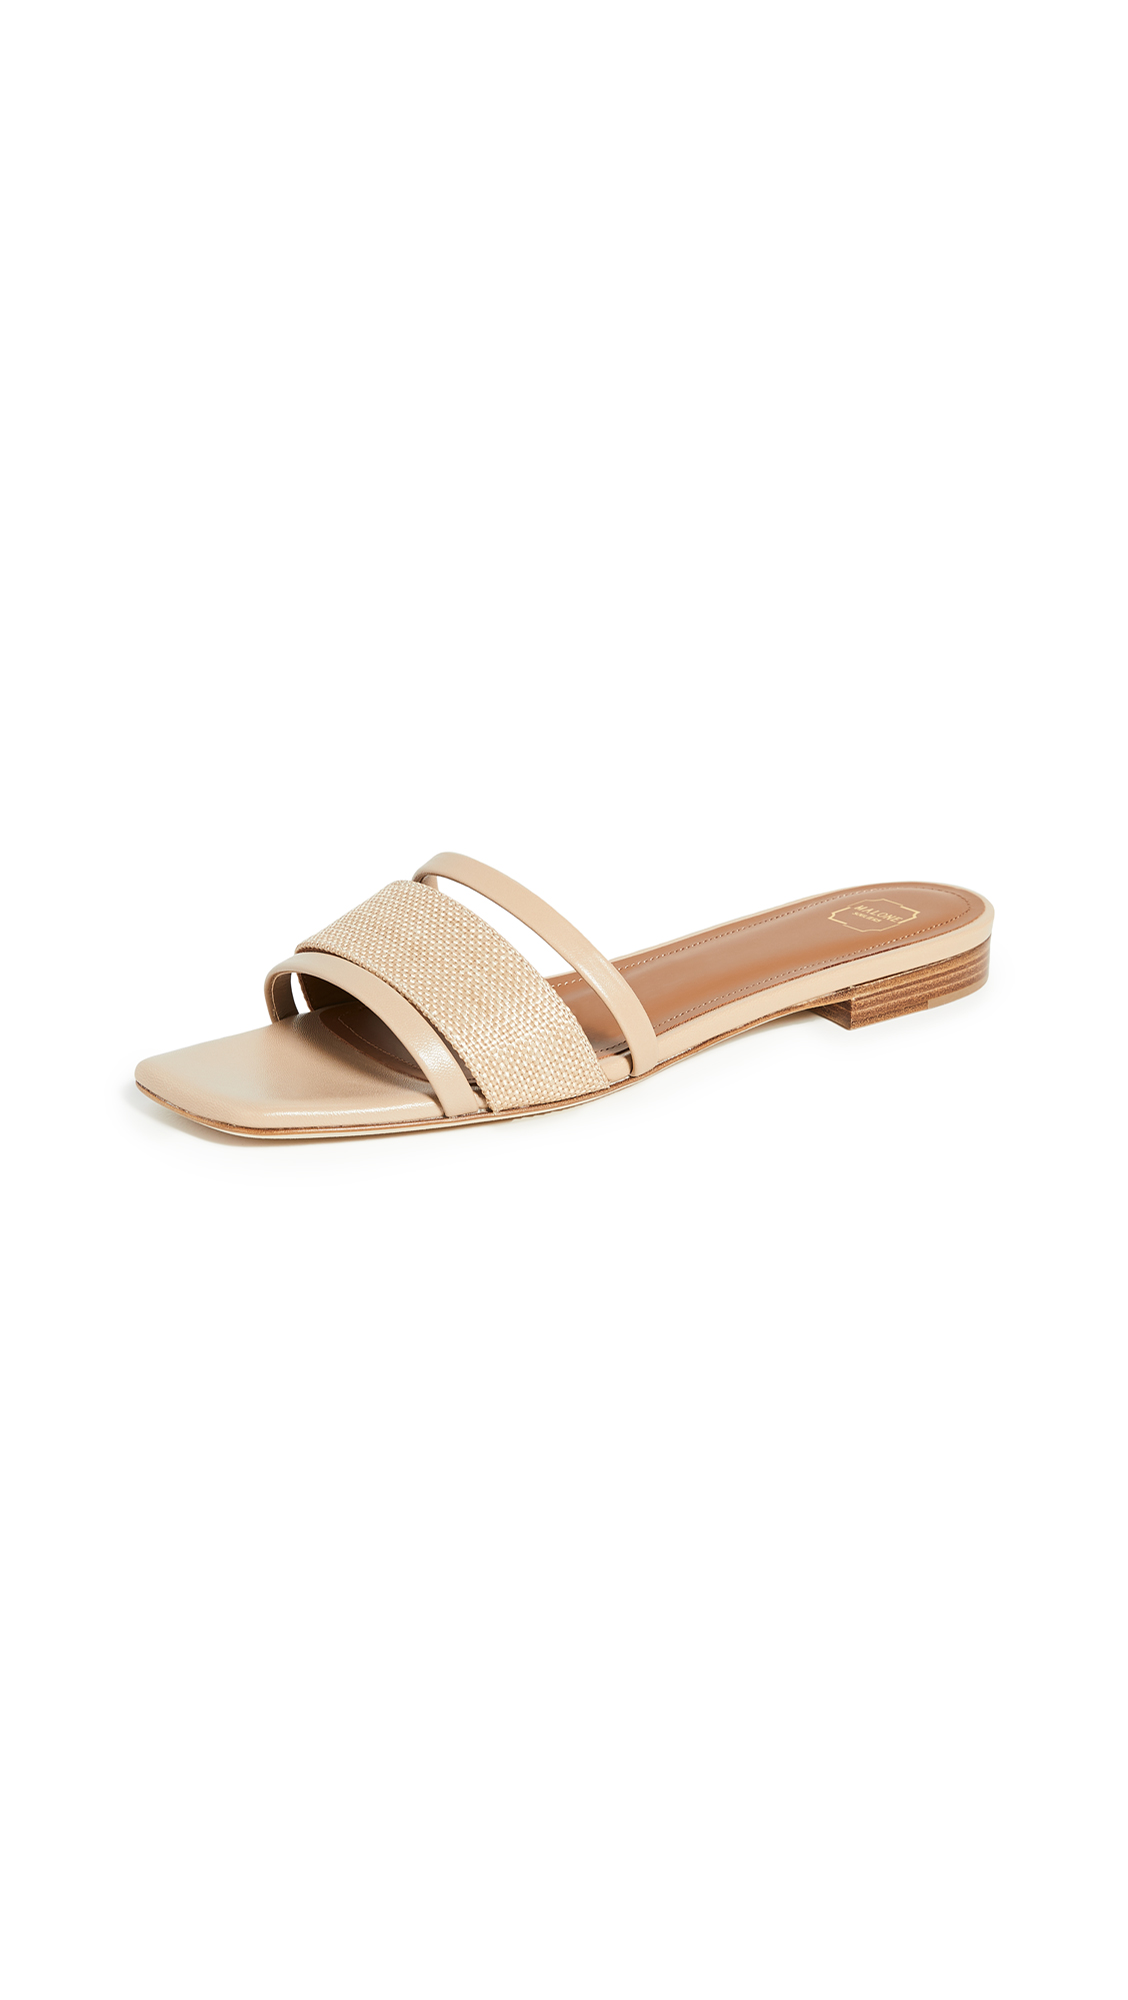 Buy Malone Souliers Demi Slides online, shop Malone Souliers